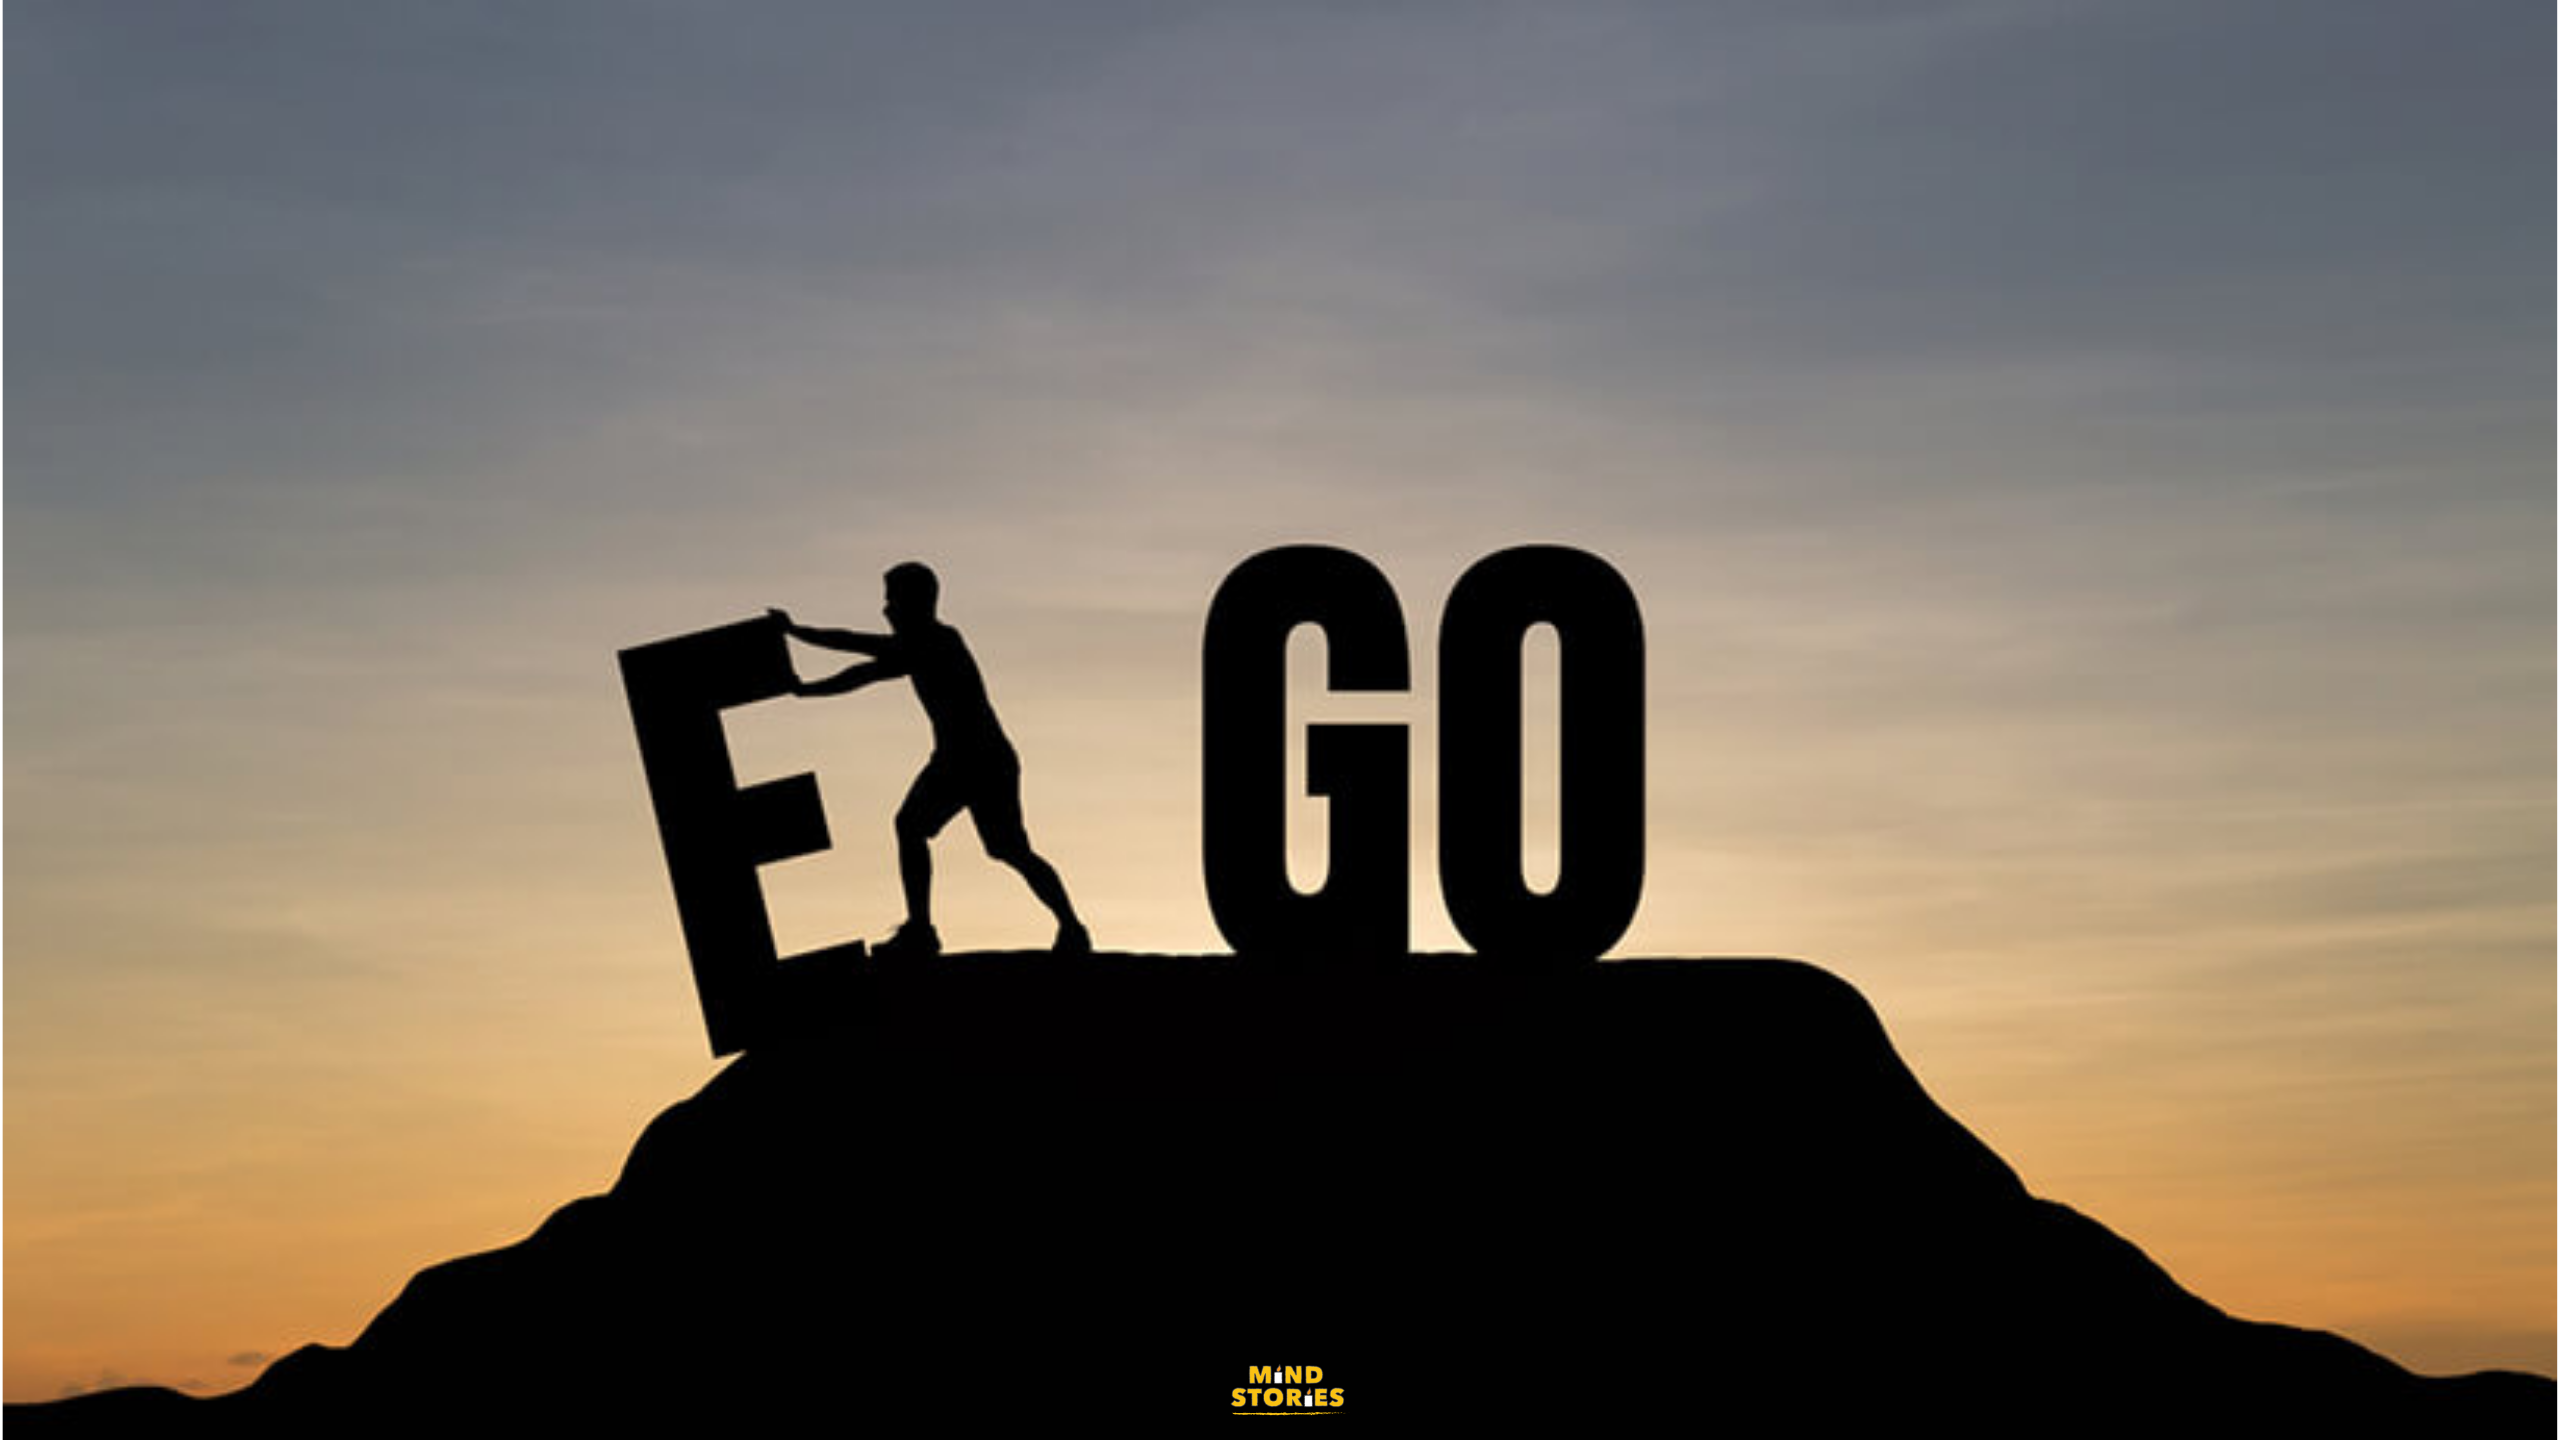 How to let go of ego and enjoy life?